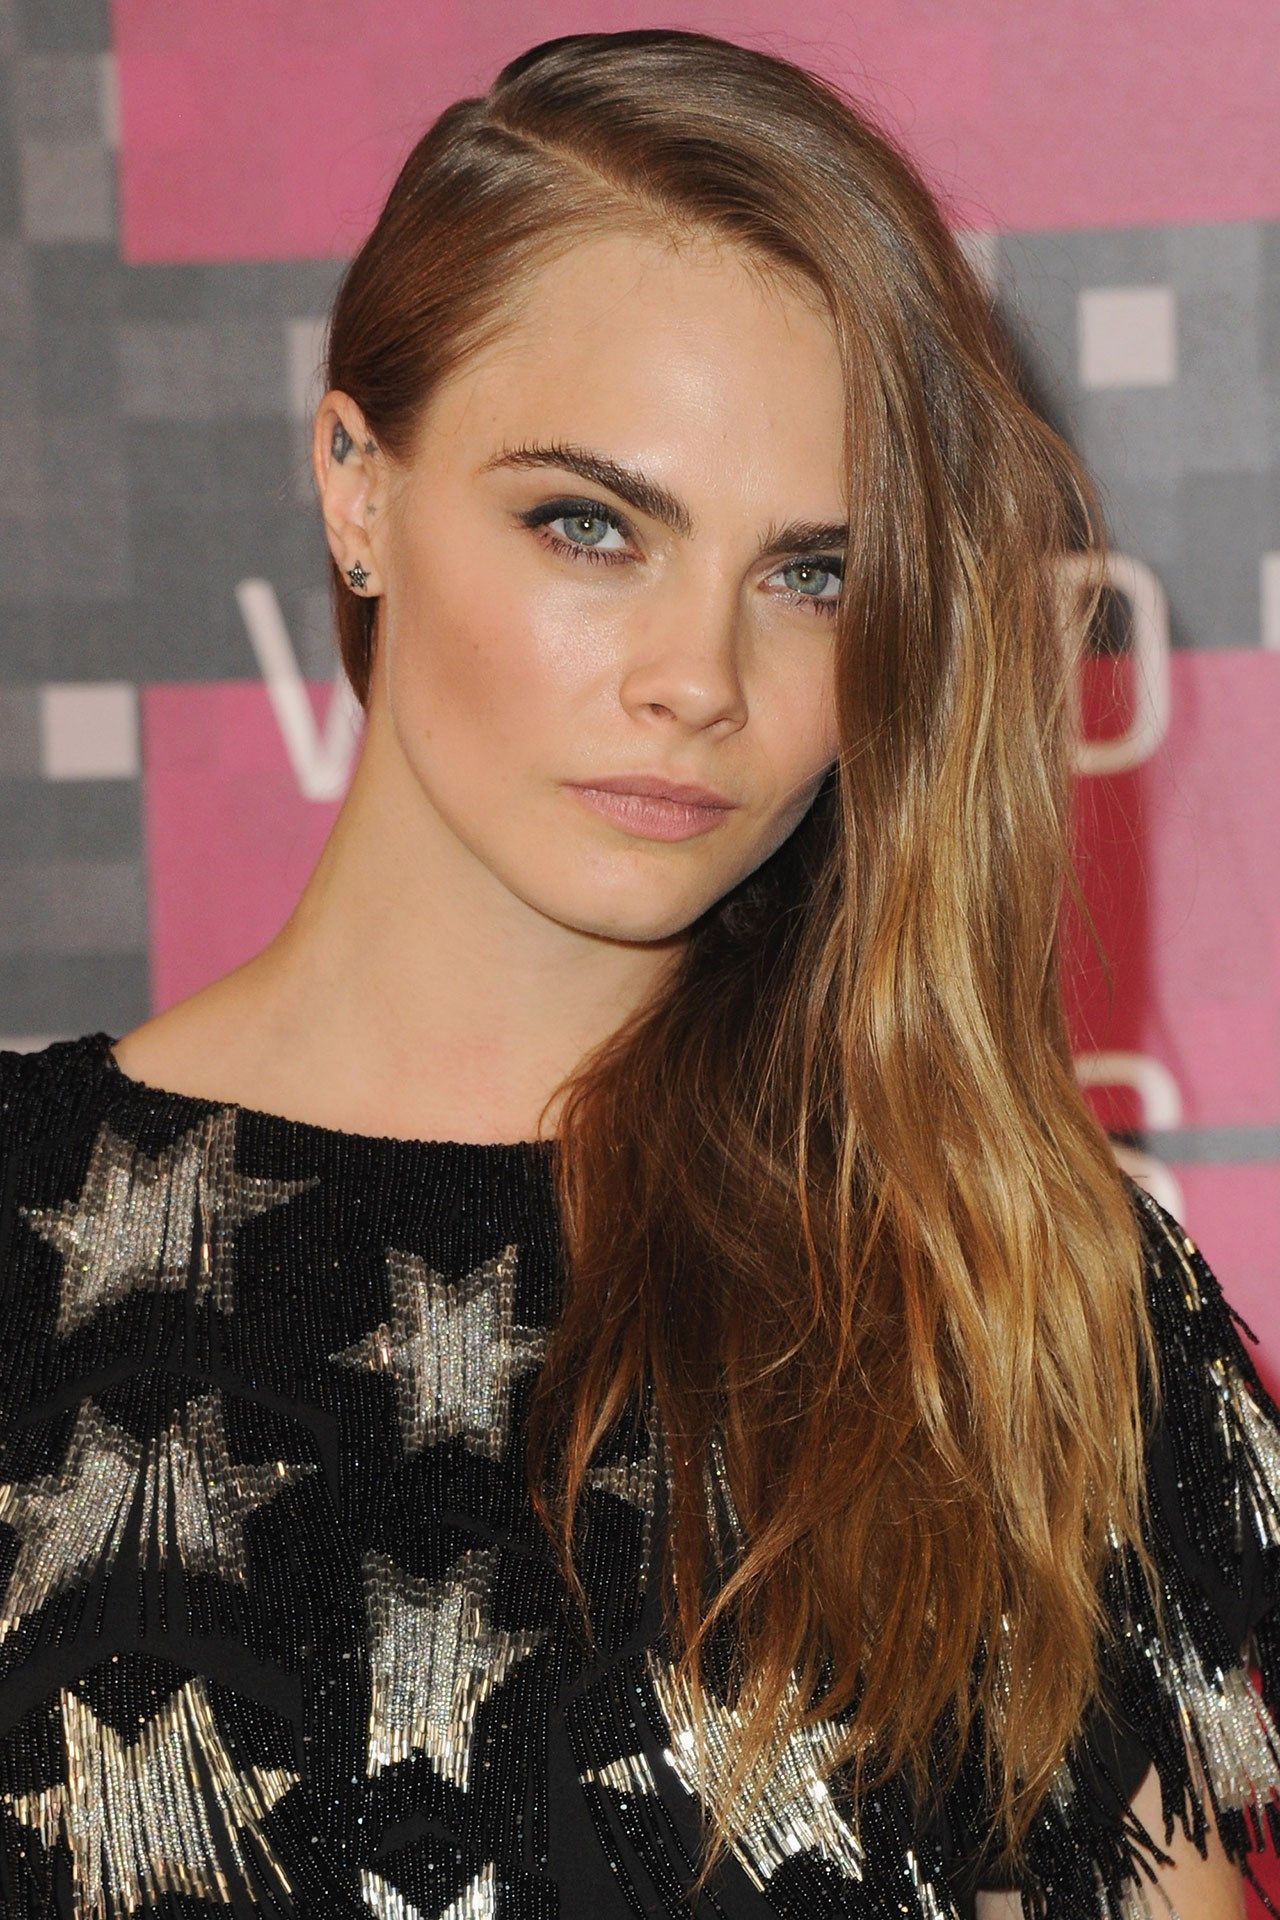 CARA DELEVINGNE's career jump from model to actress may have garnered critical acclaim for the Vogue cover star, but she has revealed that it wasn't as easy as she thought it would be